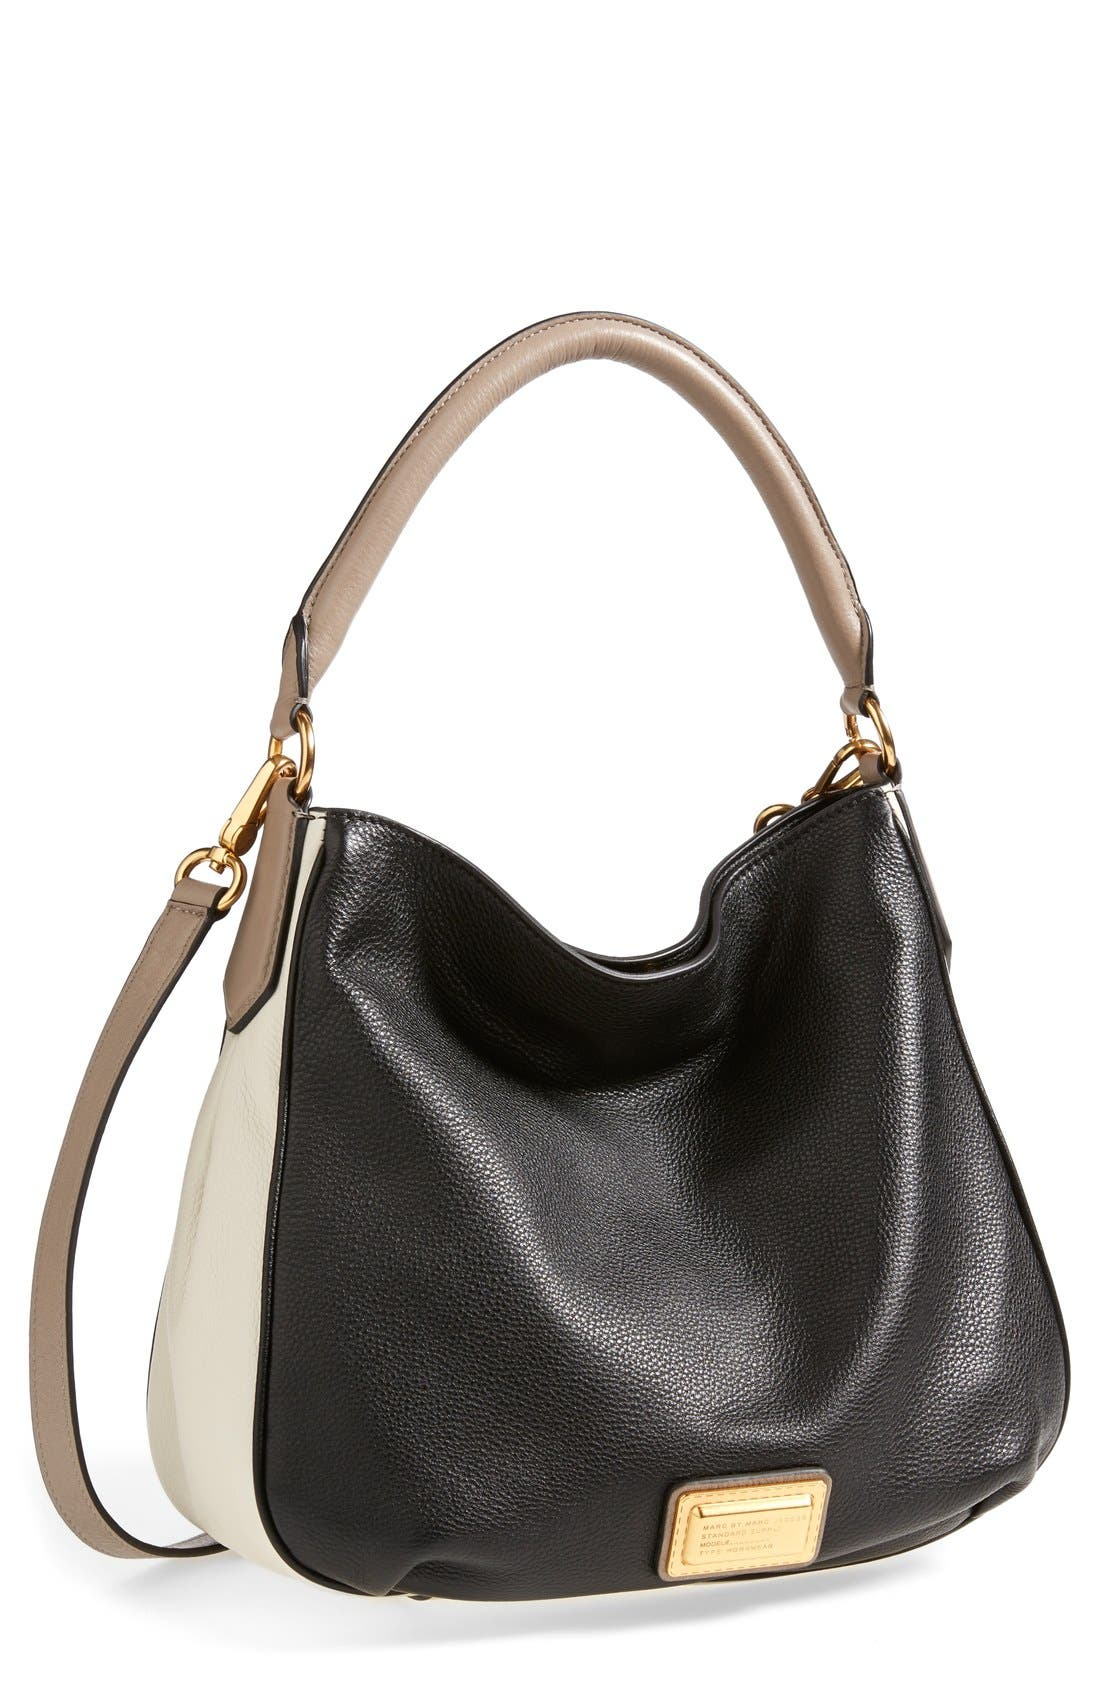 MARC JACOBS,                             MARC BY MARC JACOBS Hobo,                             Main thumbnail 1, color,                             002